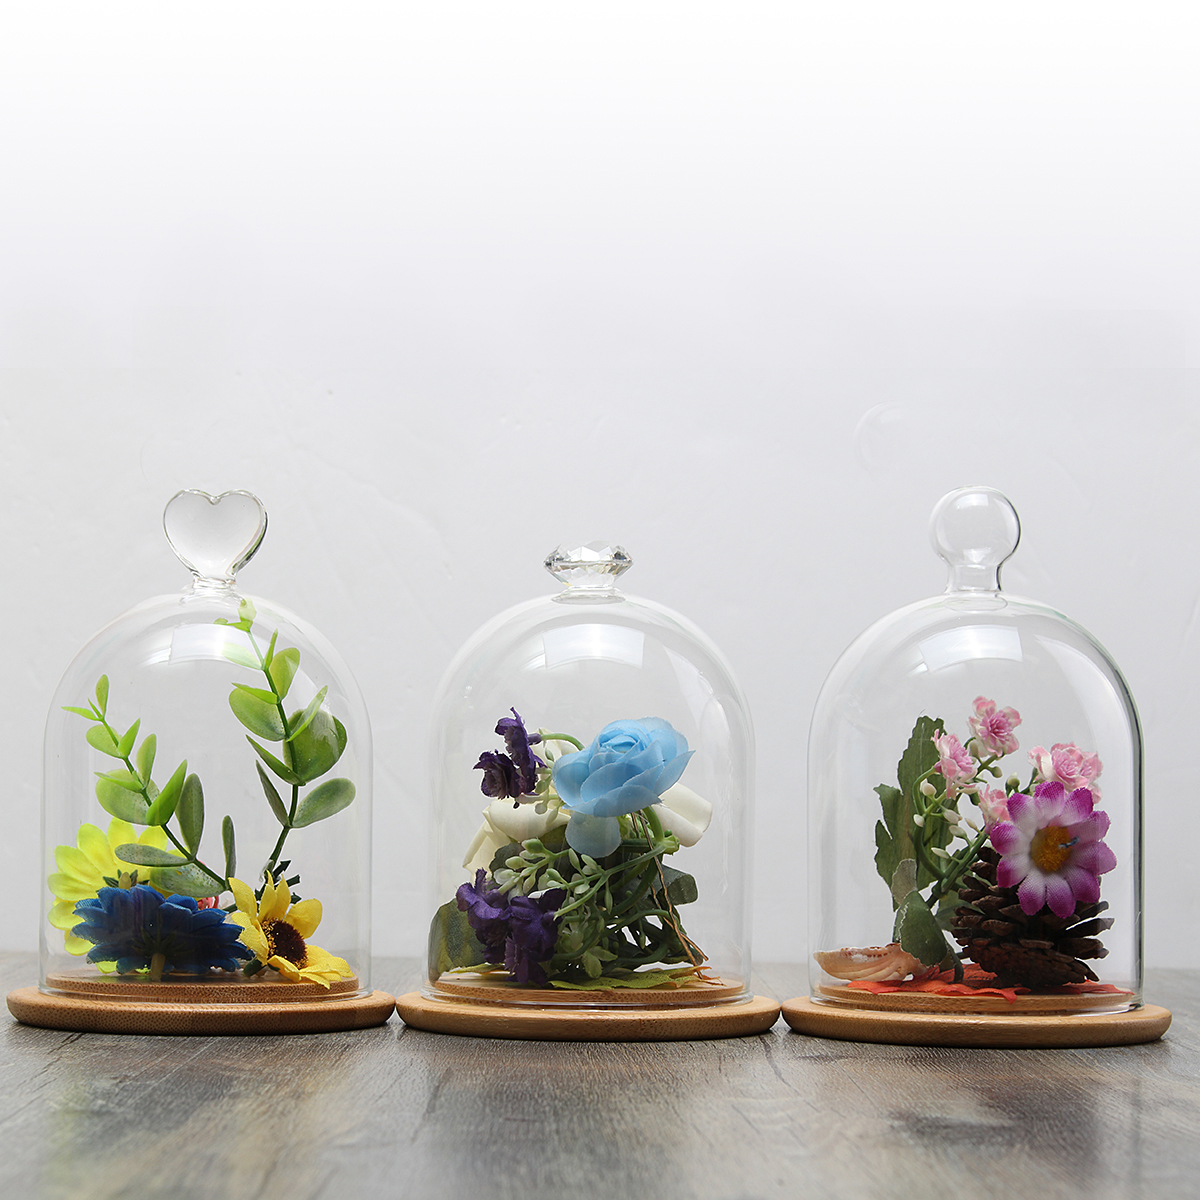 Clear Glass Display Cloche Bell Jar Dome Flower Preserve Vase + Wooden Base